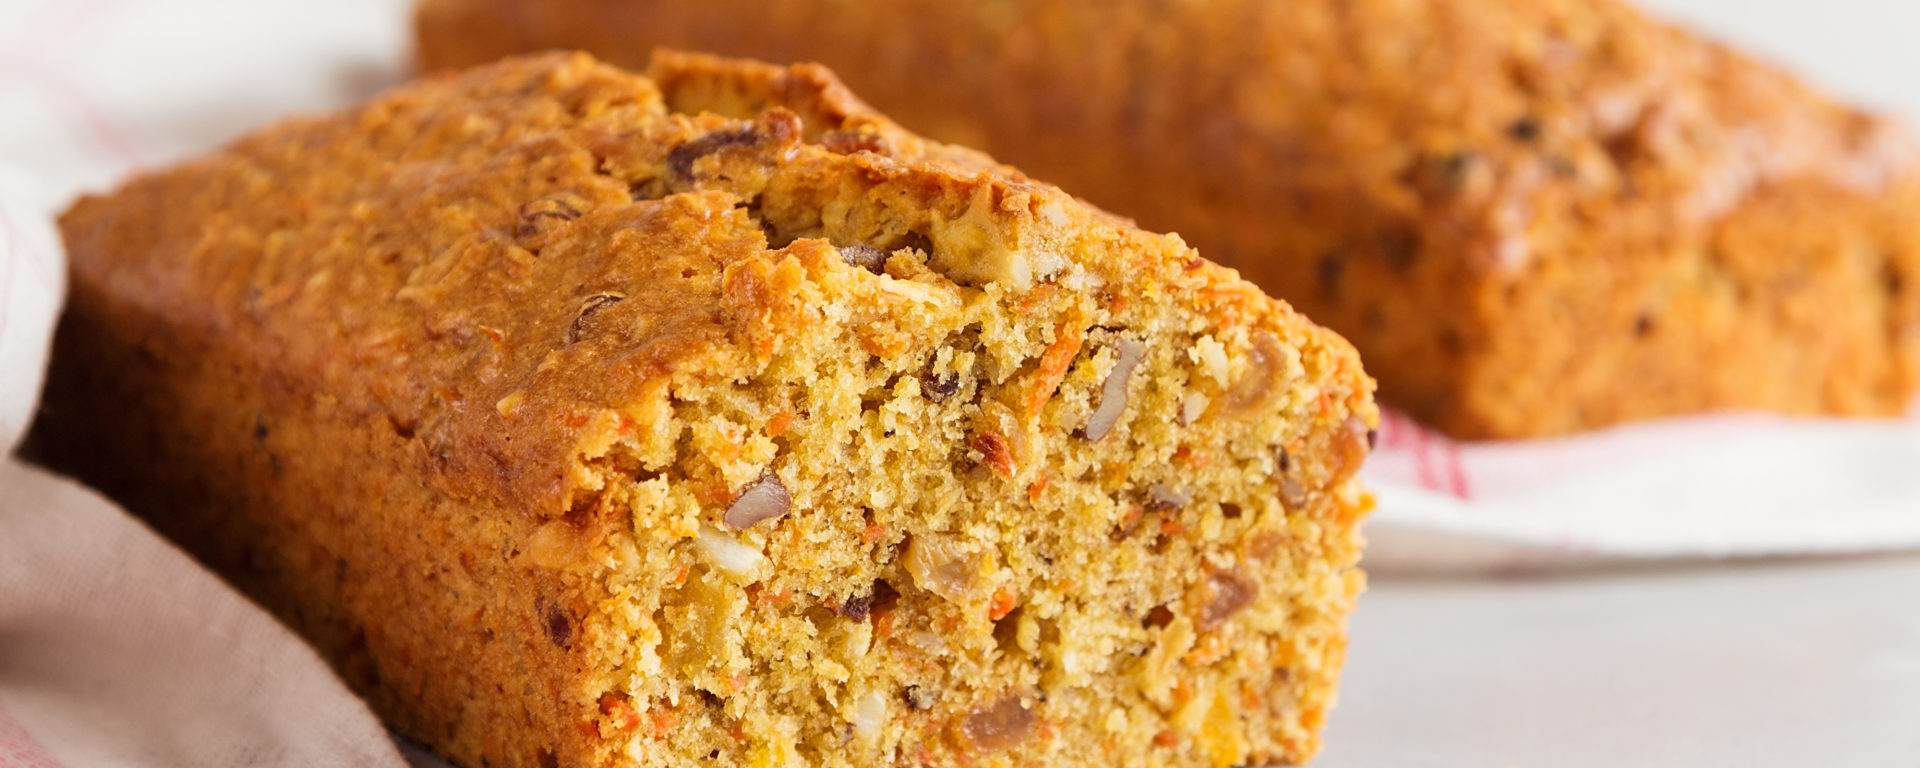 The Famous Sugar Free Carrot Cake Recipe Glycoleap Blog